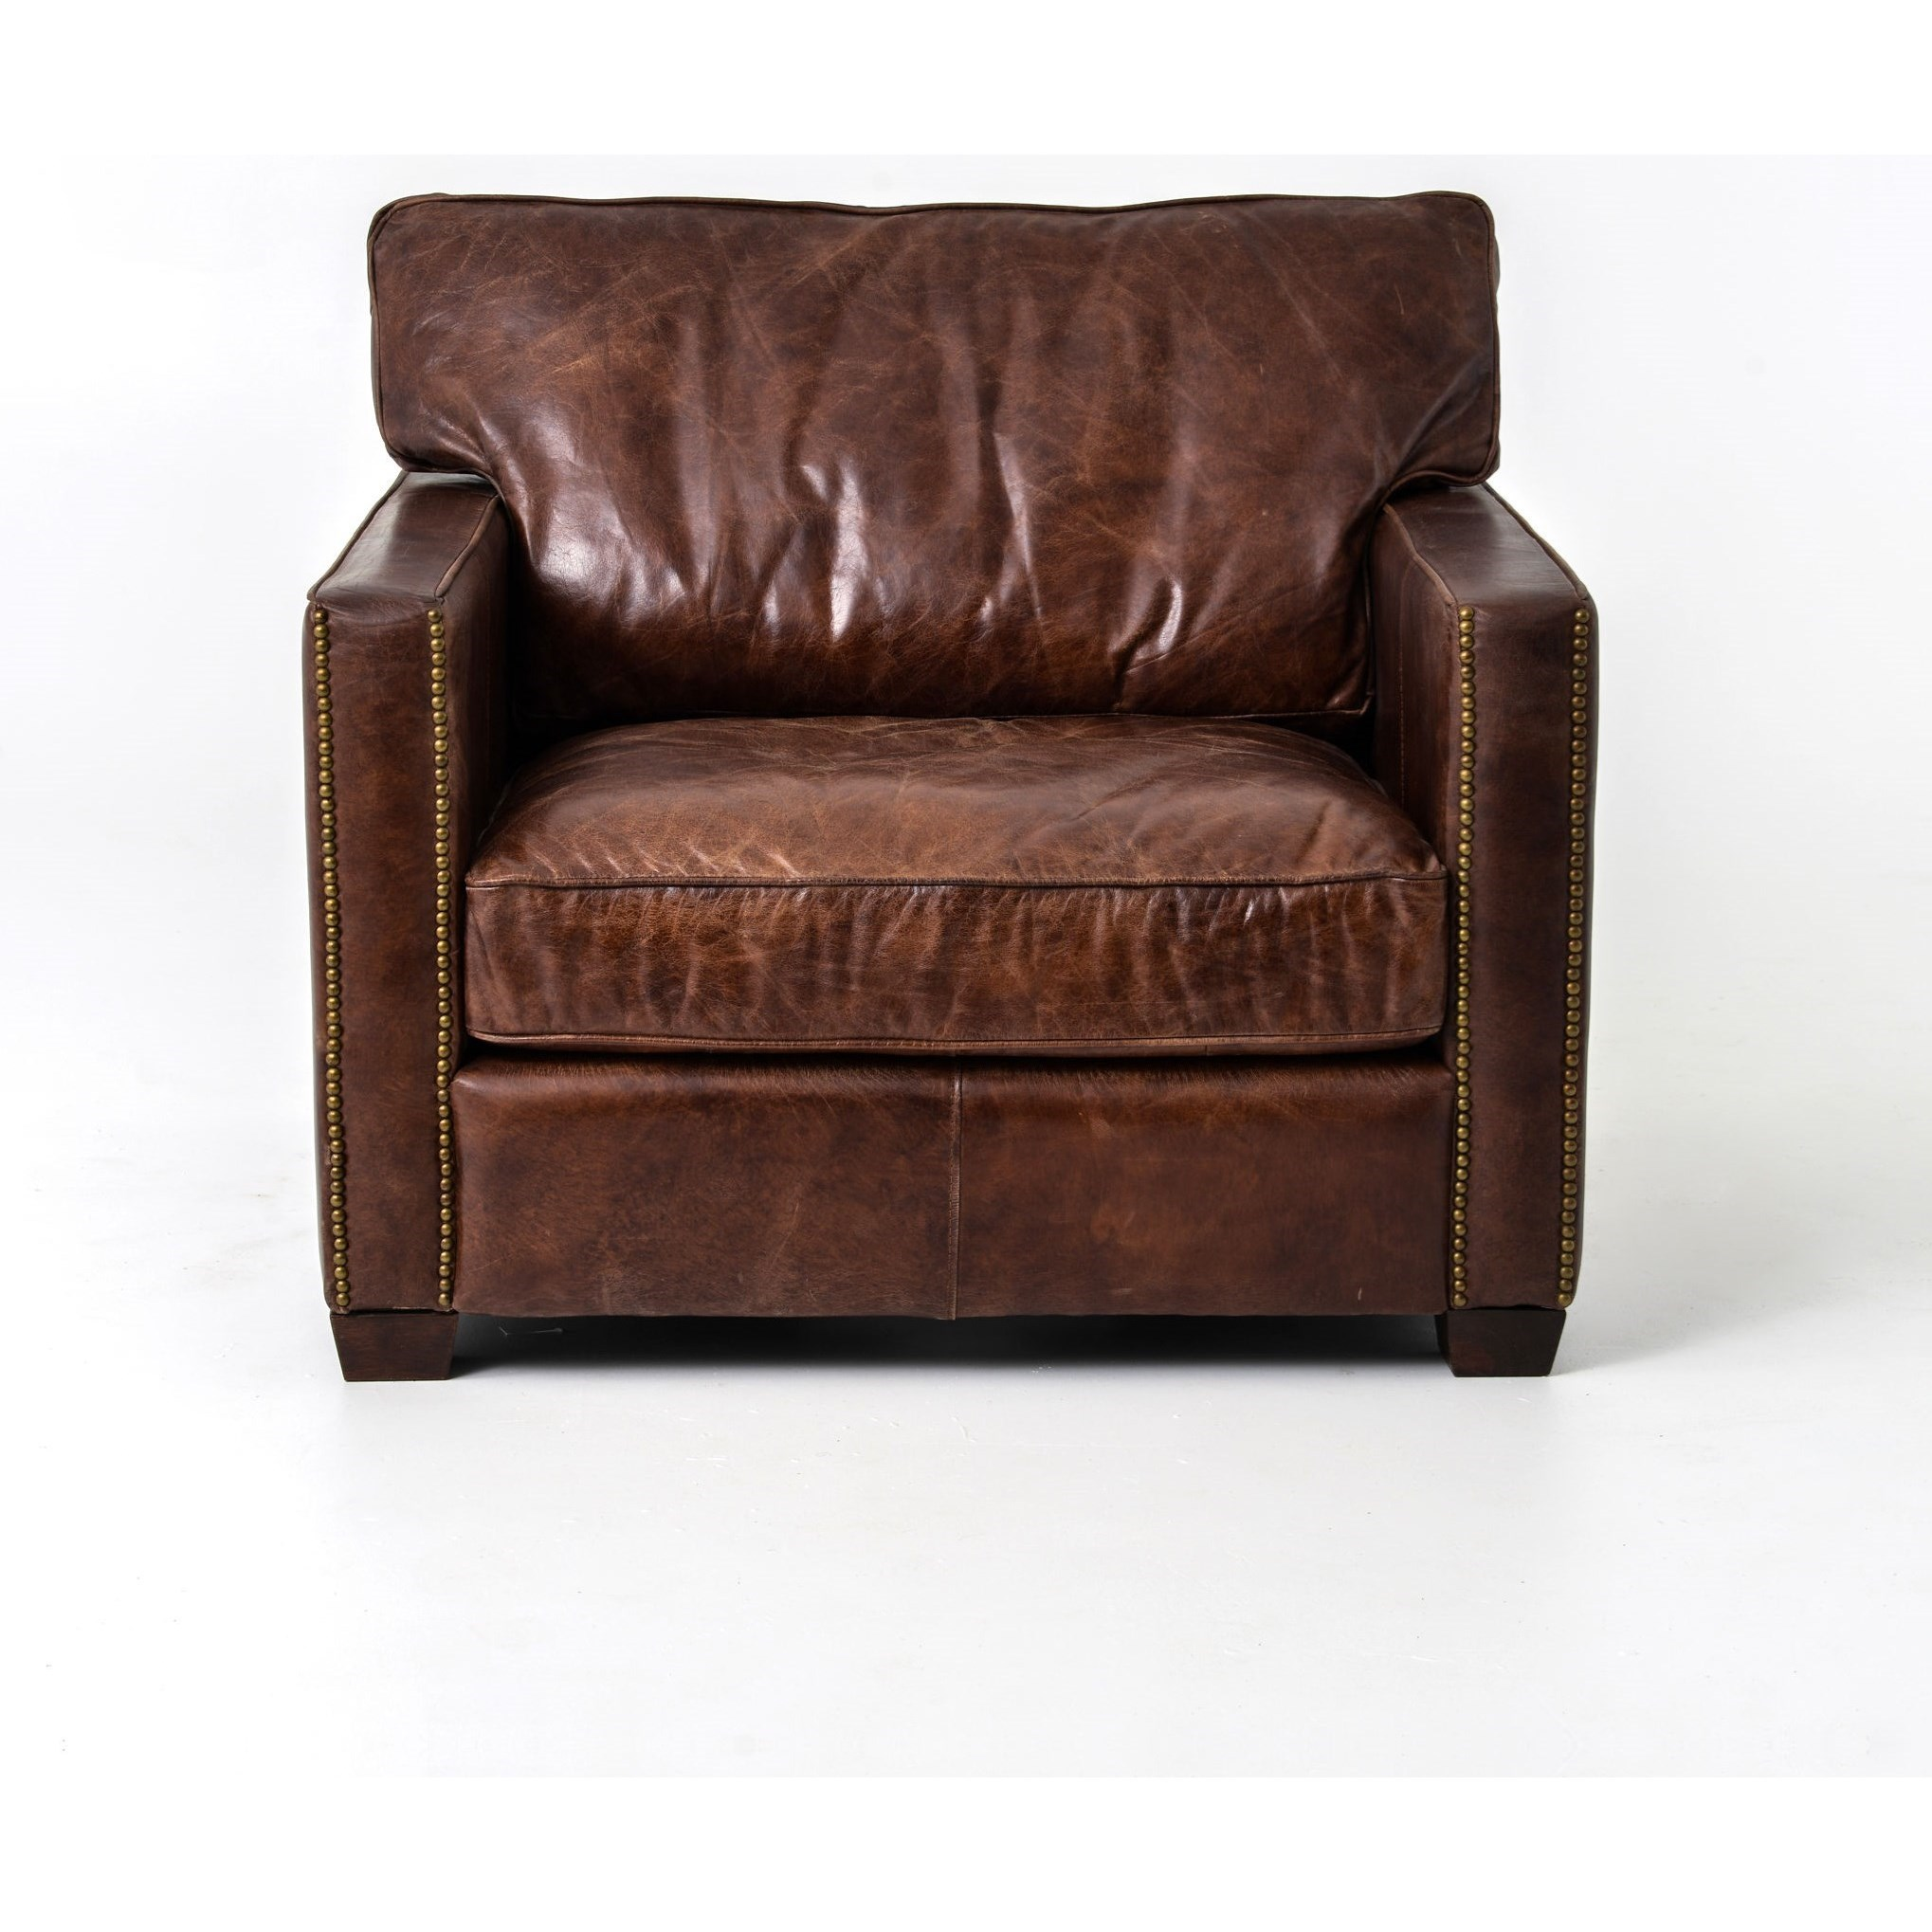 Ordinaire By Four Hands. Larkin Club Chair With Cigar Leather Upholstery